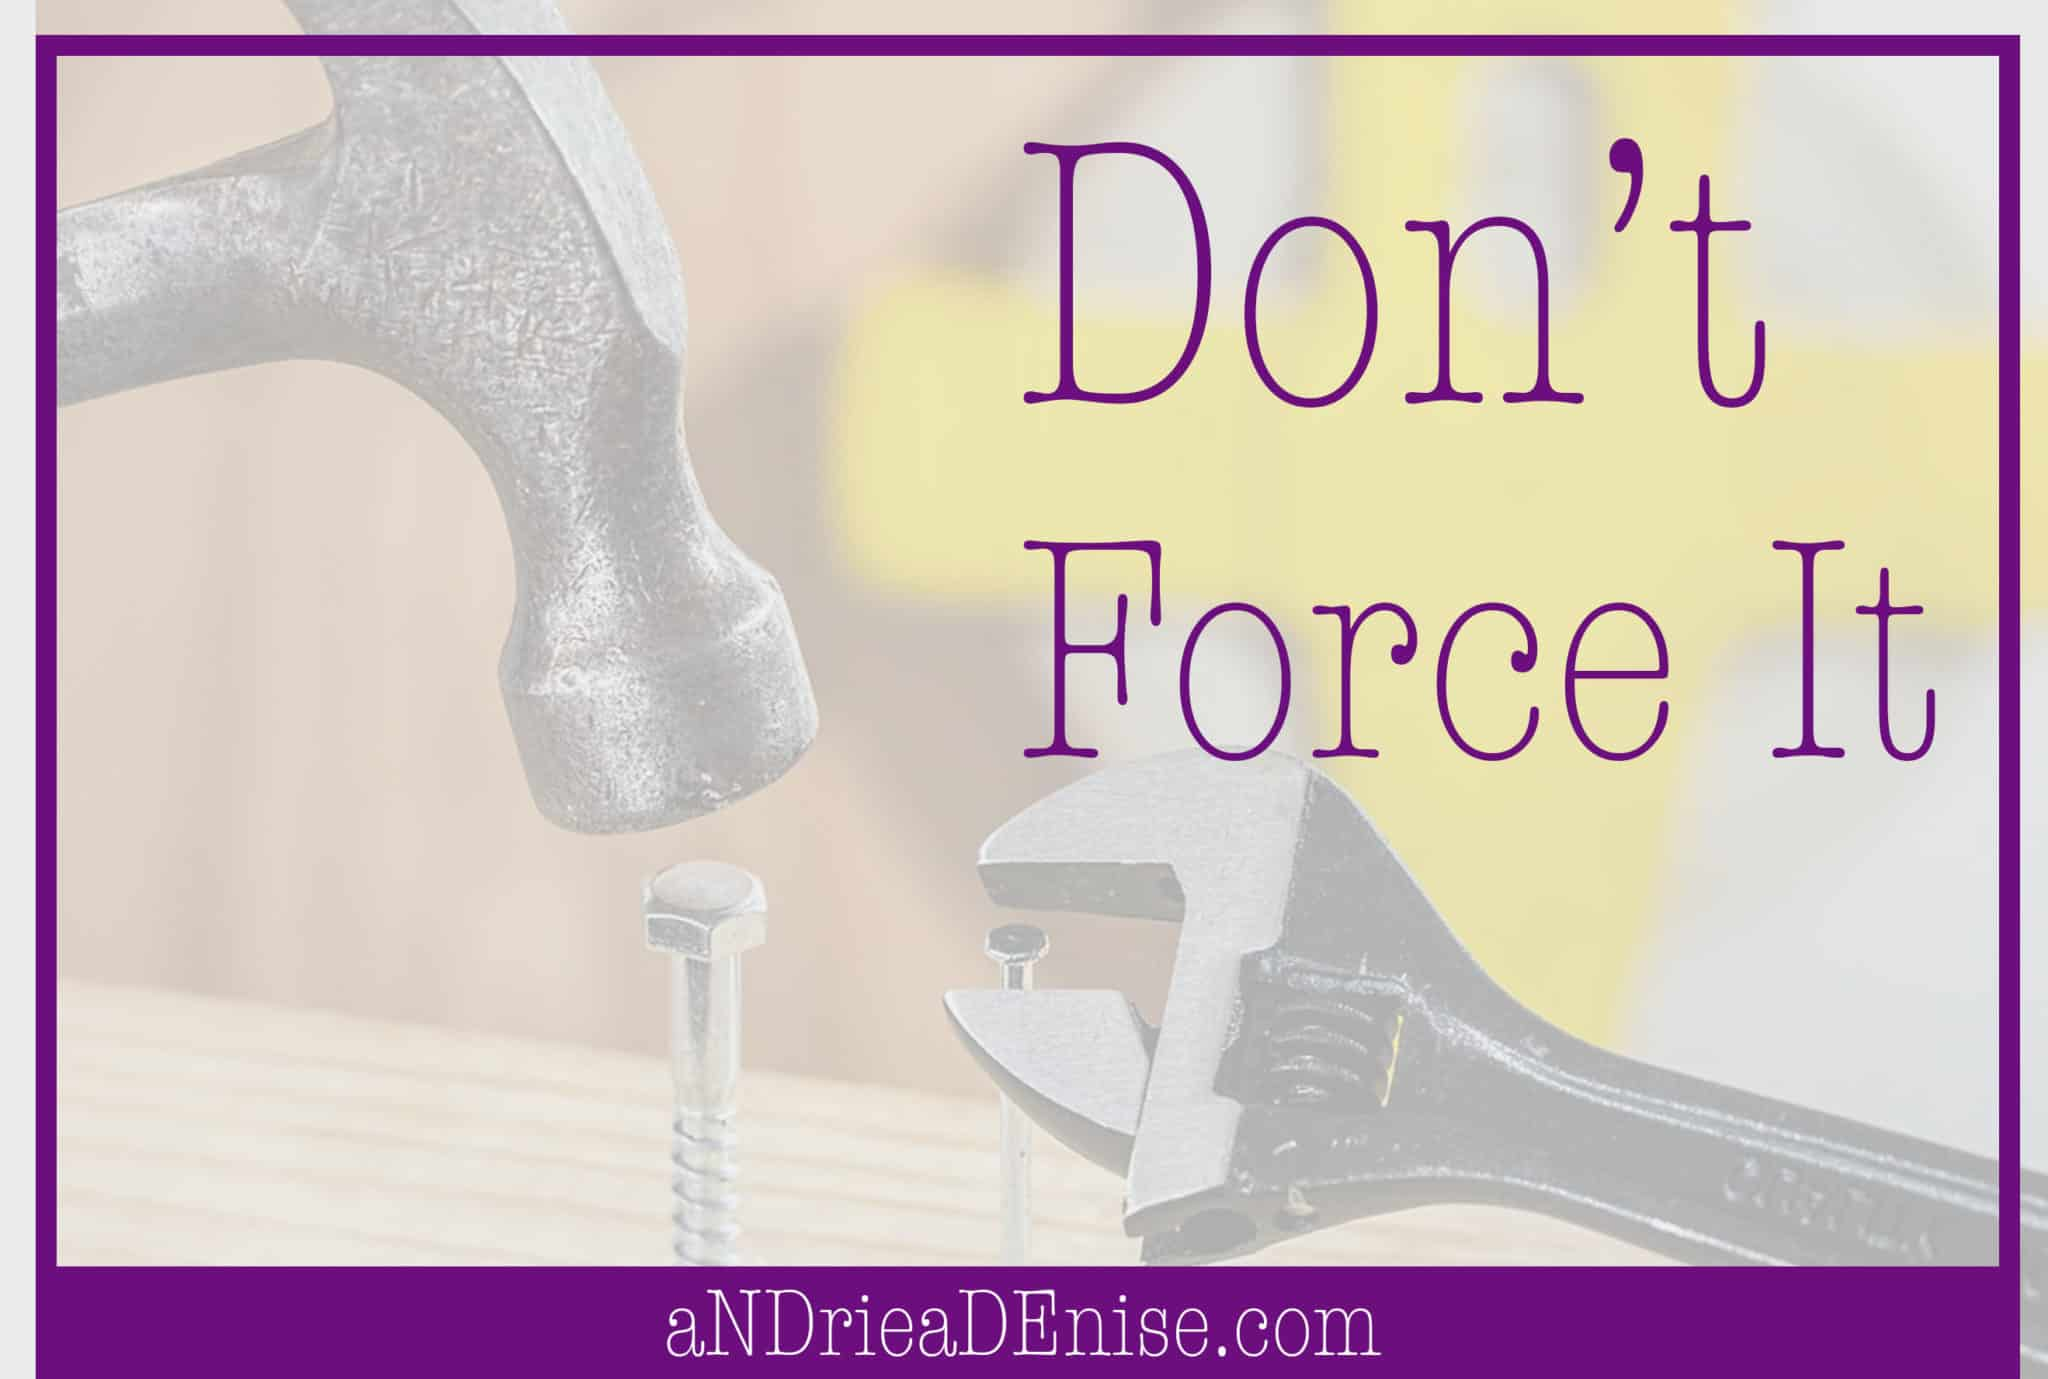 Don't force your business